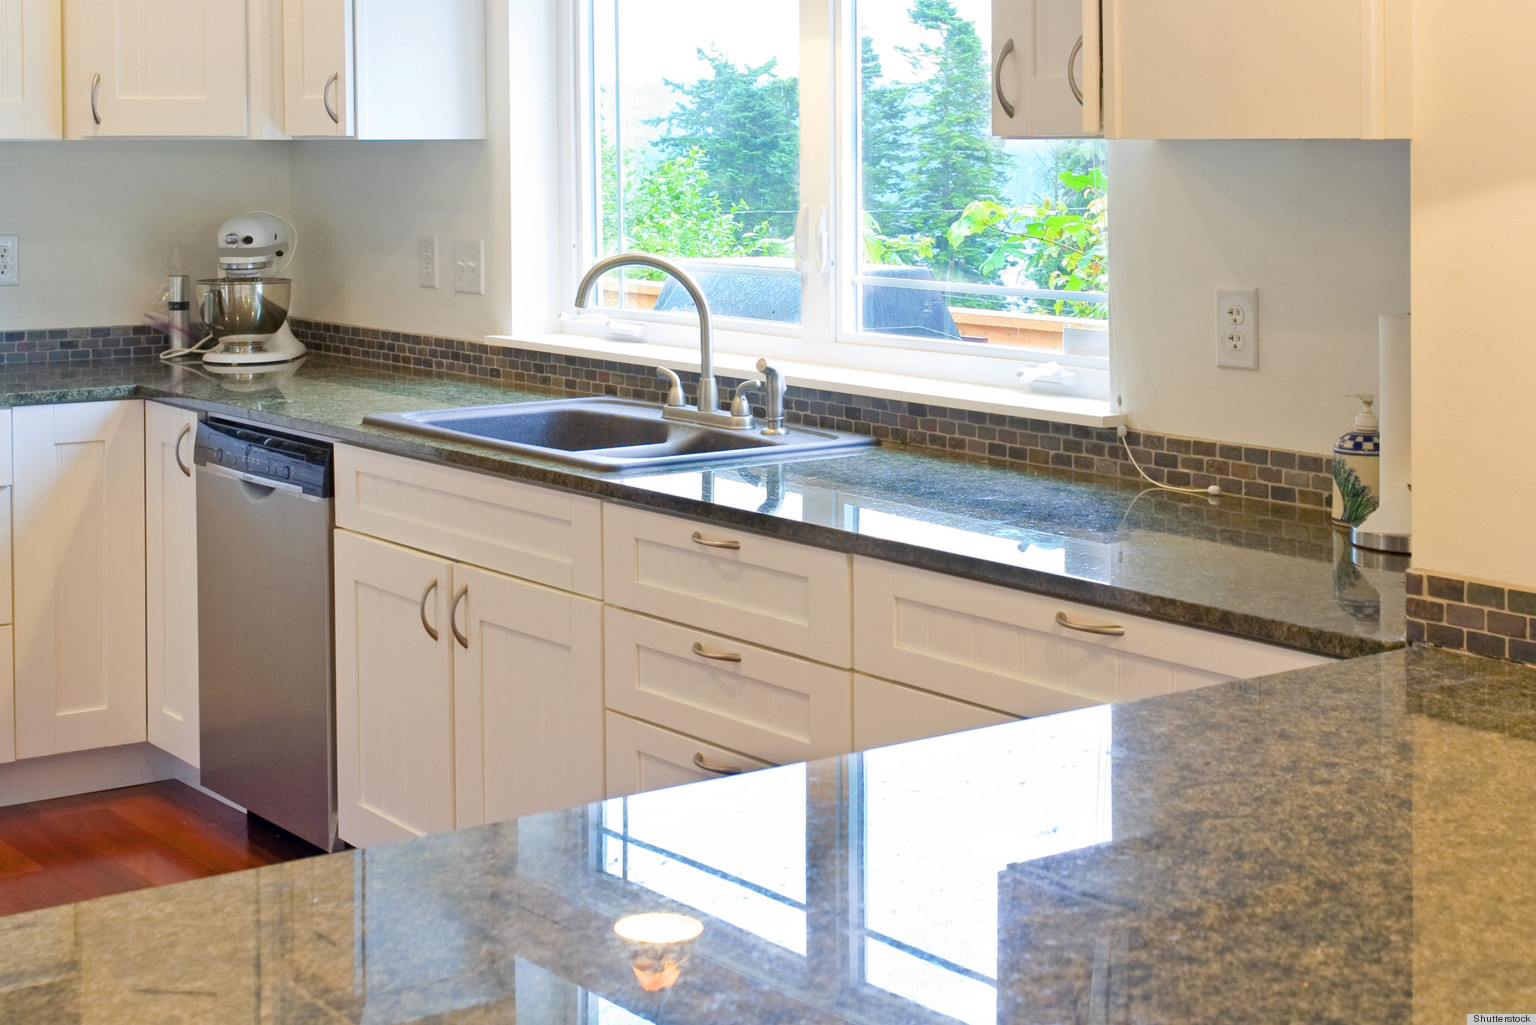 unclutter kitchen counter b inexpensive kitchen countertops Unclutter Your Life Clearing the Kitchen Counter of Unnecessary Small Appliances HuffPost